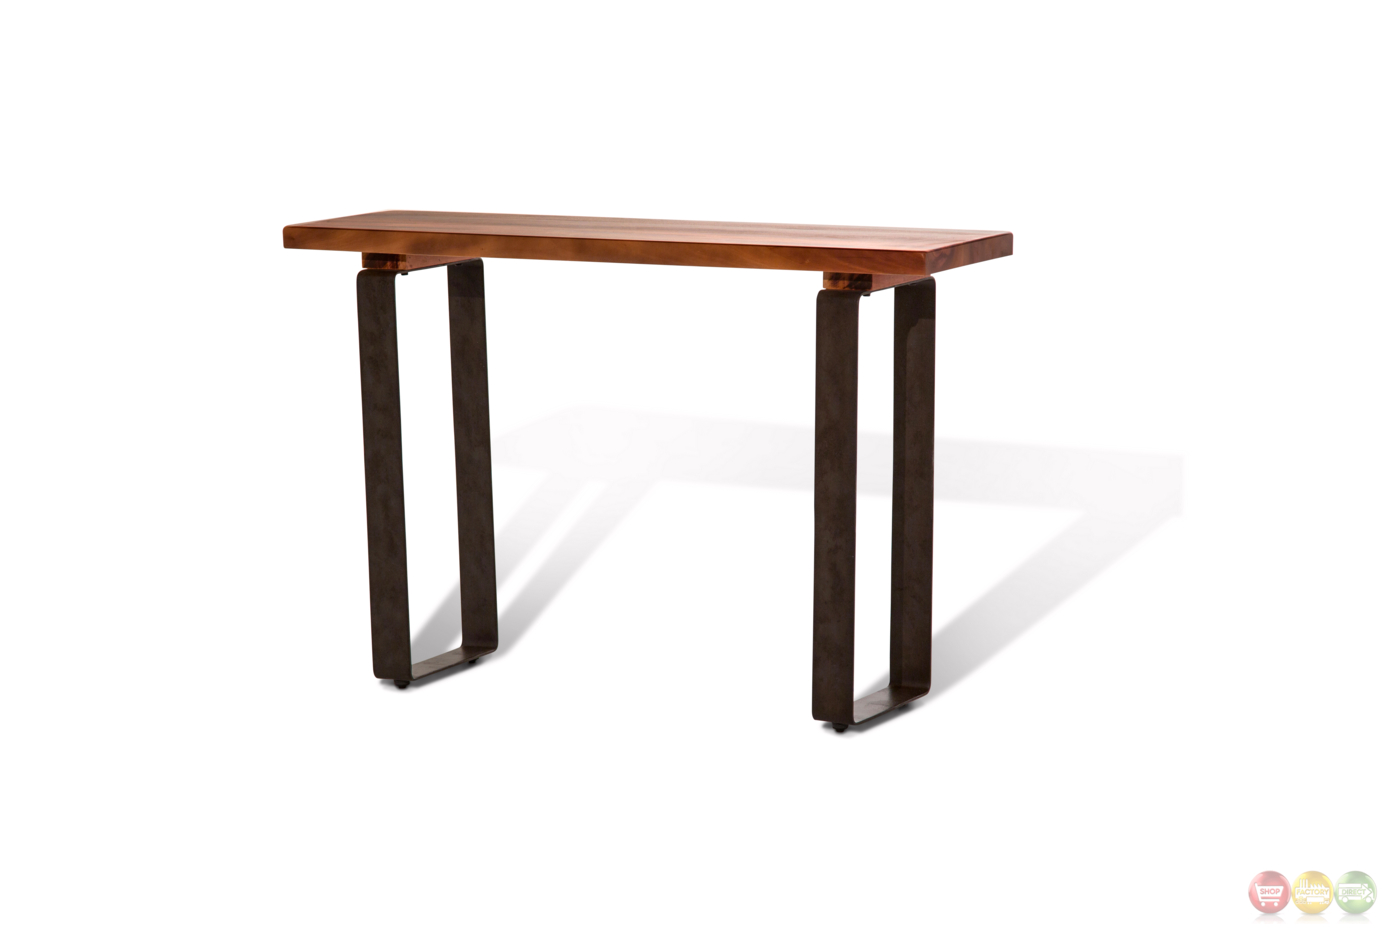 Telluride Rustic Country Style Mahogany Coffee Table With